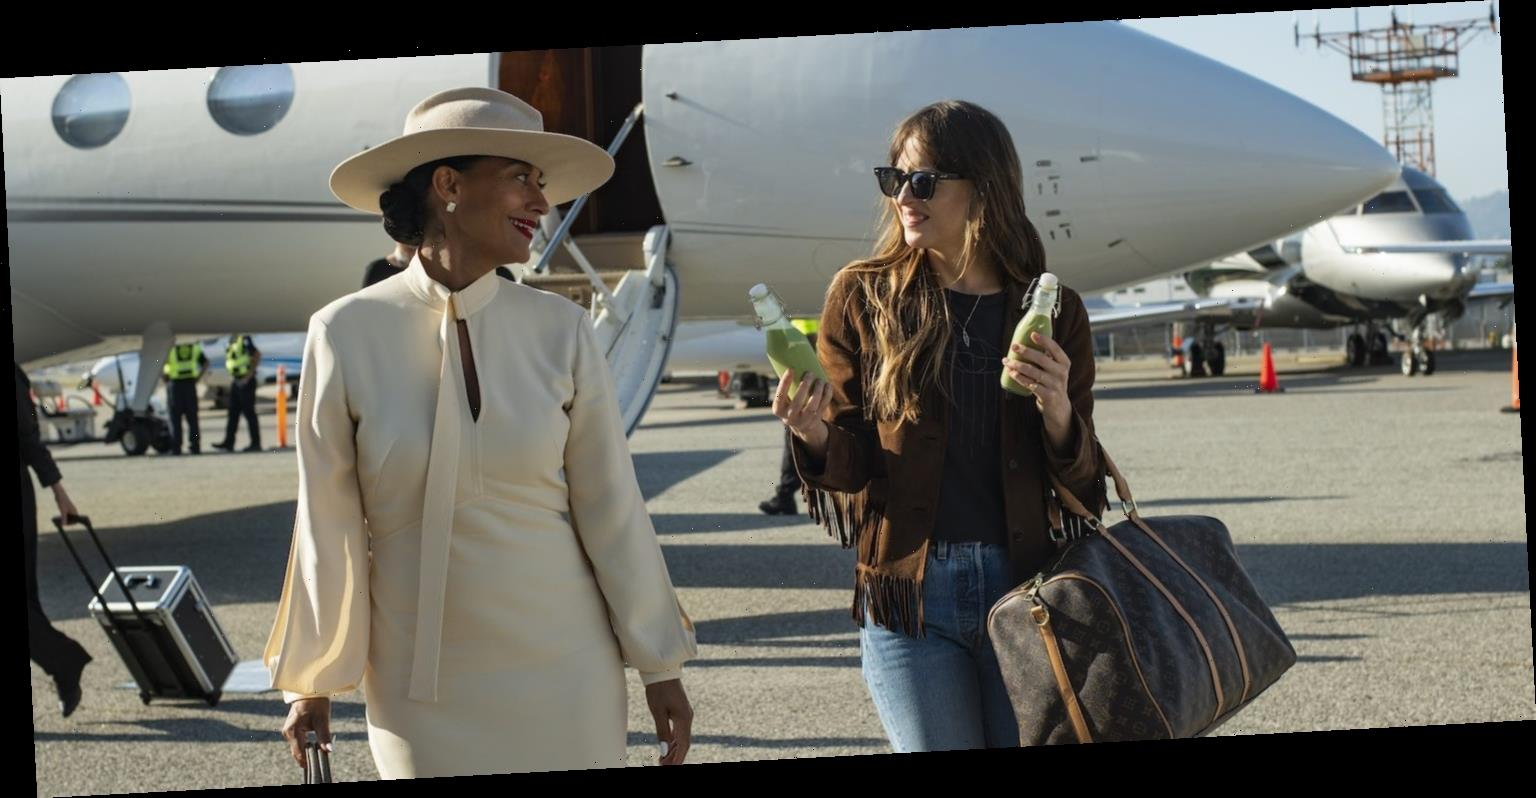 'The High Note' Trailer: Dakota Johnson is the Ambitious Assistant to Tracee Ellis Ross' Pop Diva